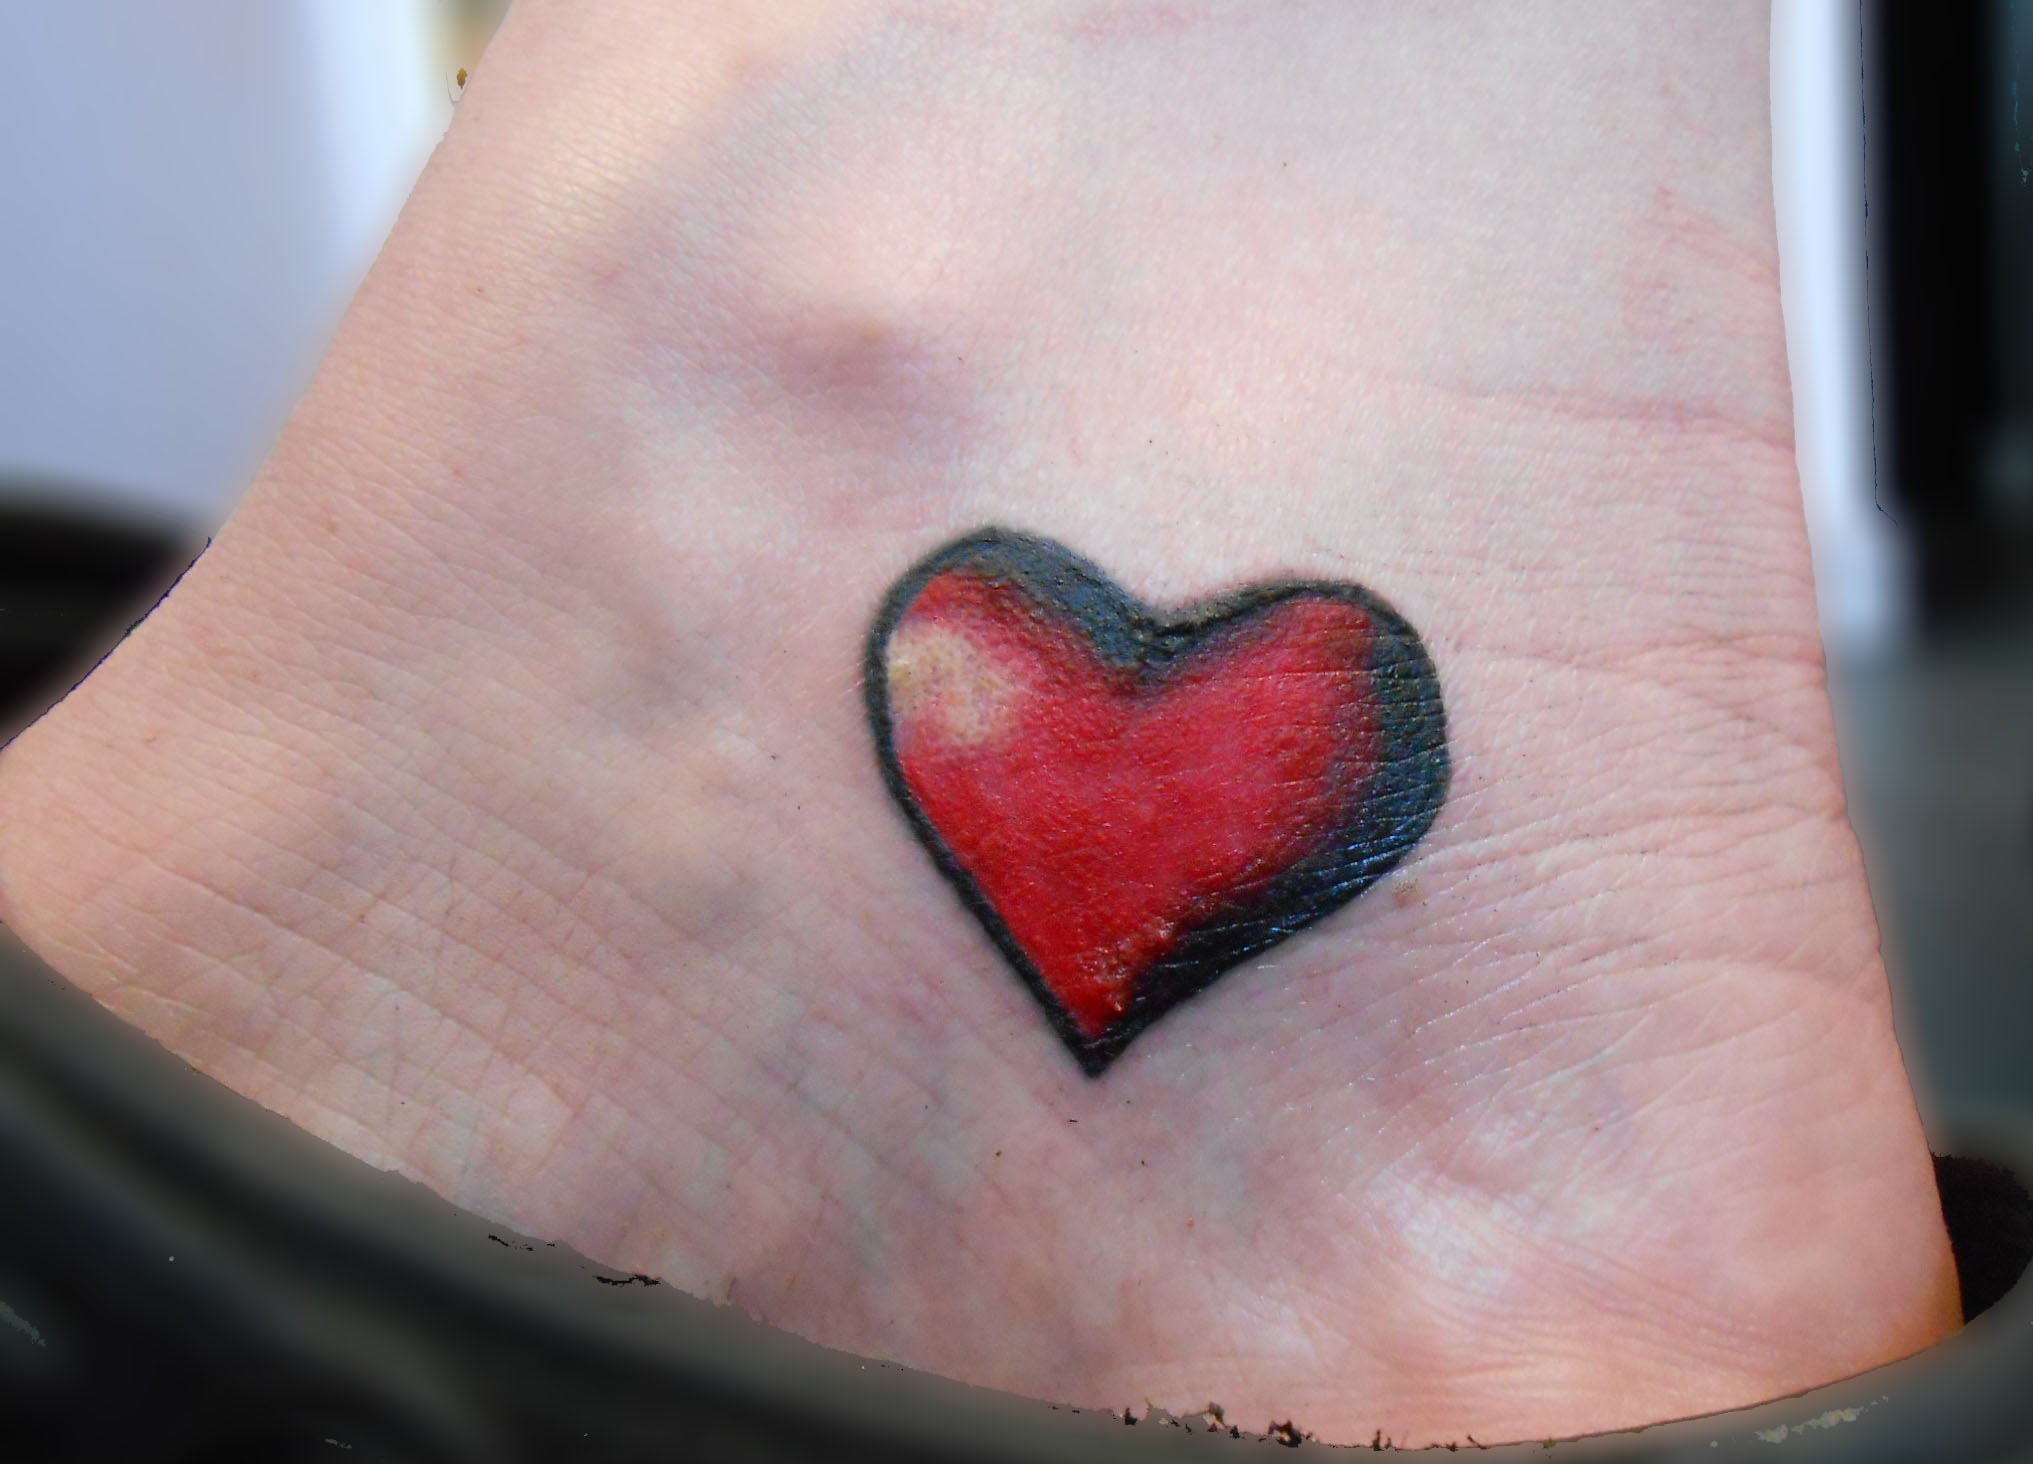 20 Heart Tattoos For Men And Women A thorough collection of heart tattoos meant to inspire your creativity. 20 heart tattoos for men and women